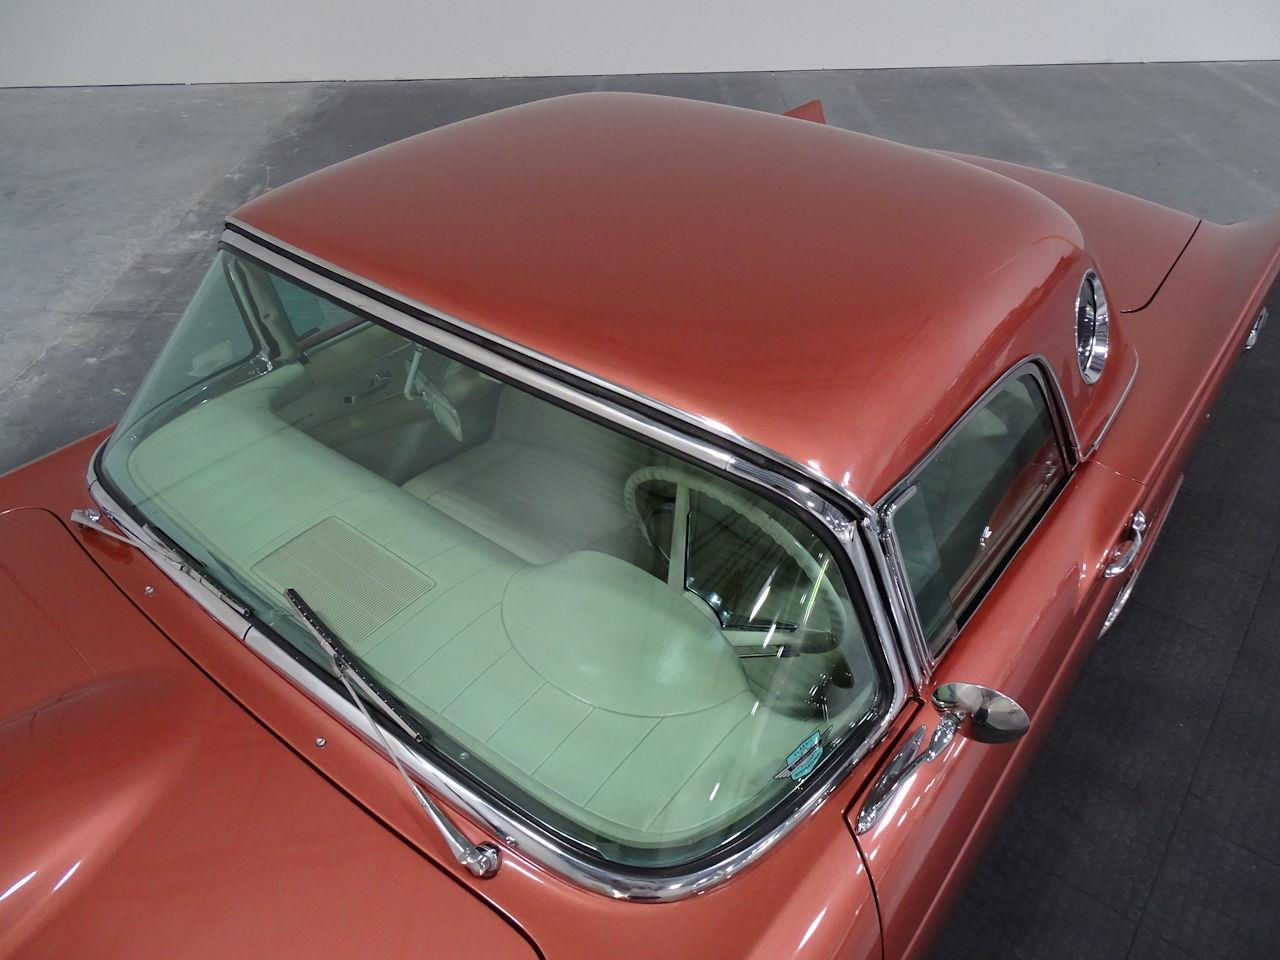 Large Picture of 1957 Ford Thunderbird located in Texas - $55,000.00 - LUKB